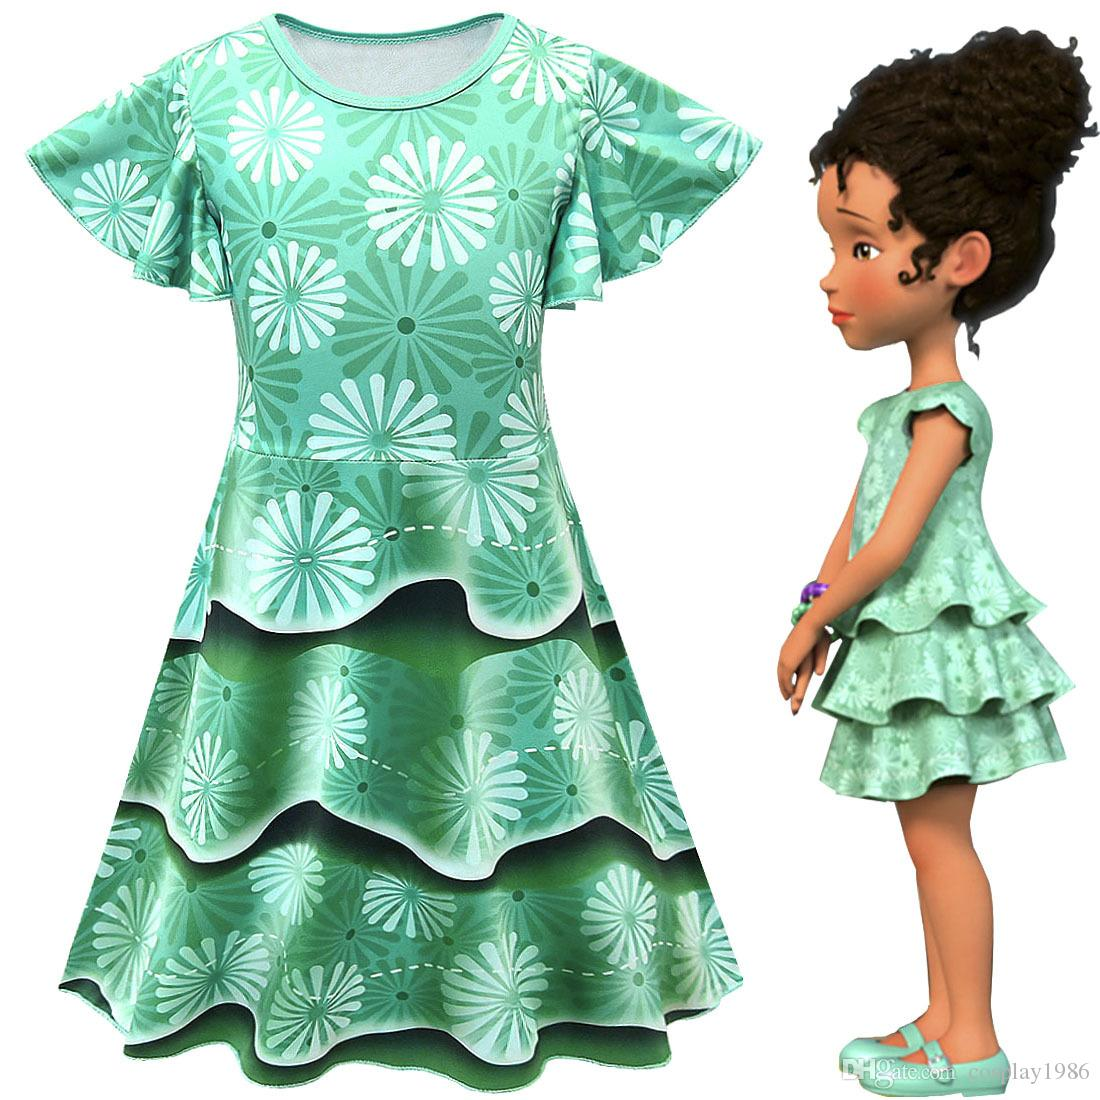 6f8039b1c25 Green Cosplay Fancy nancy Girl Kids Lovely Dress Costume Party Princess  Casual Children Summer Gift 3-10 Year Old